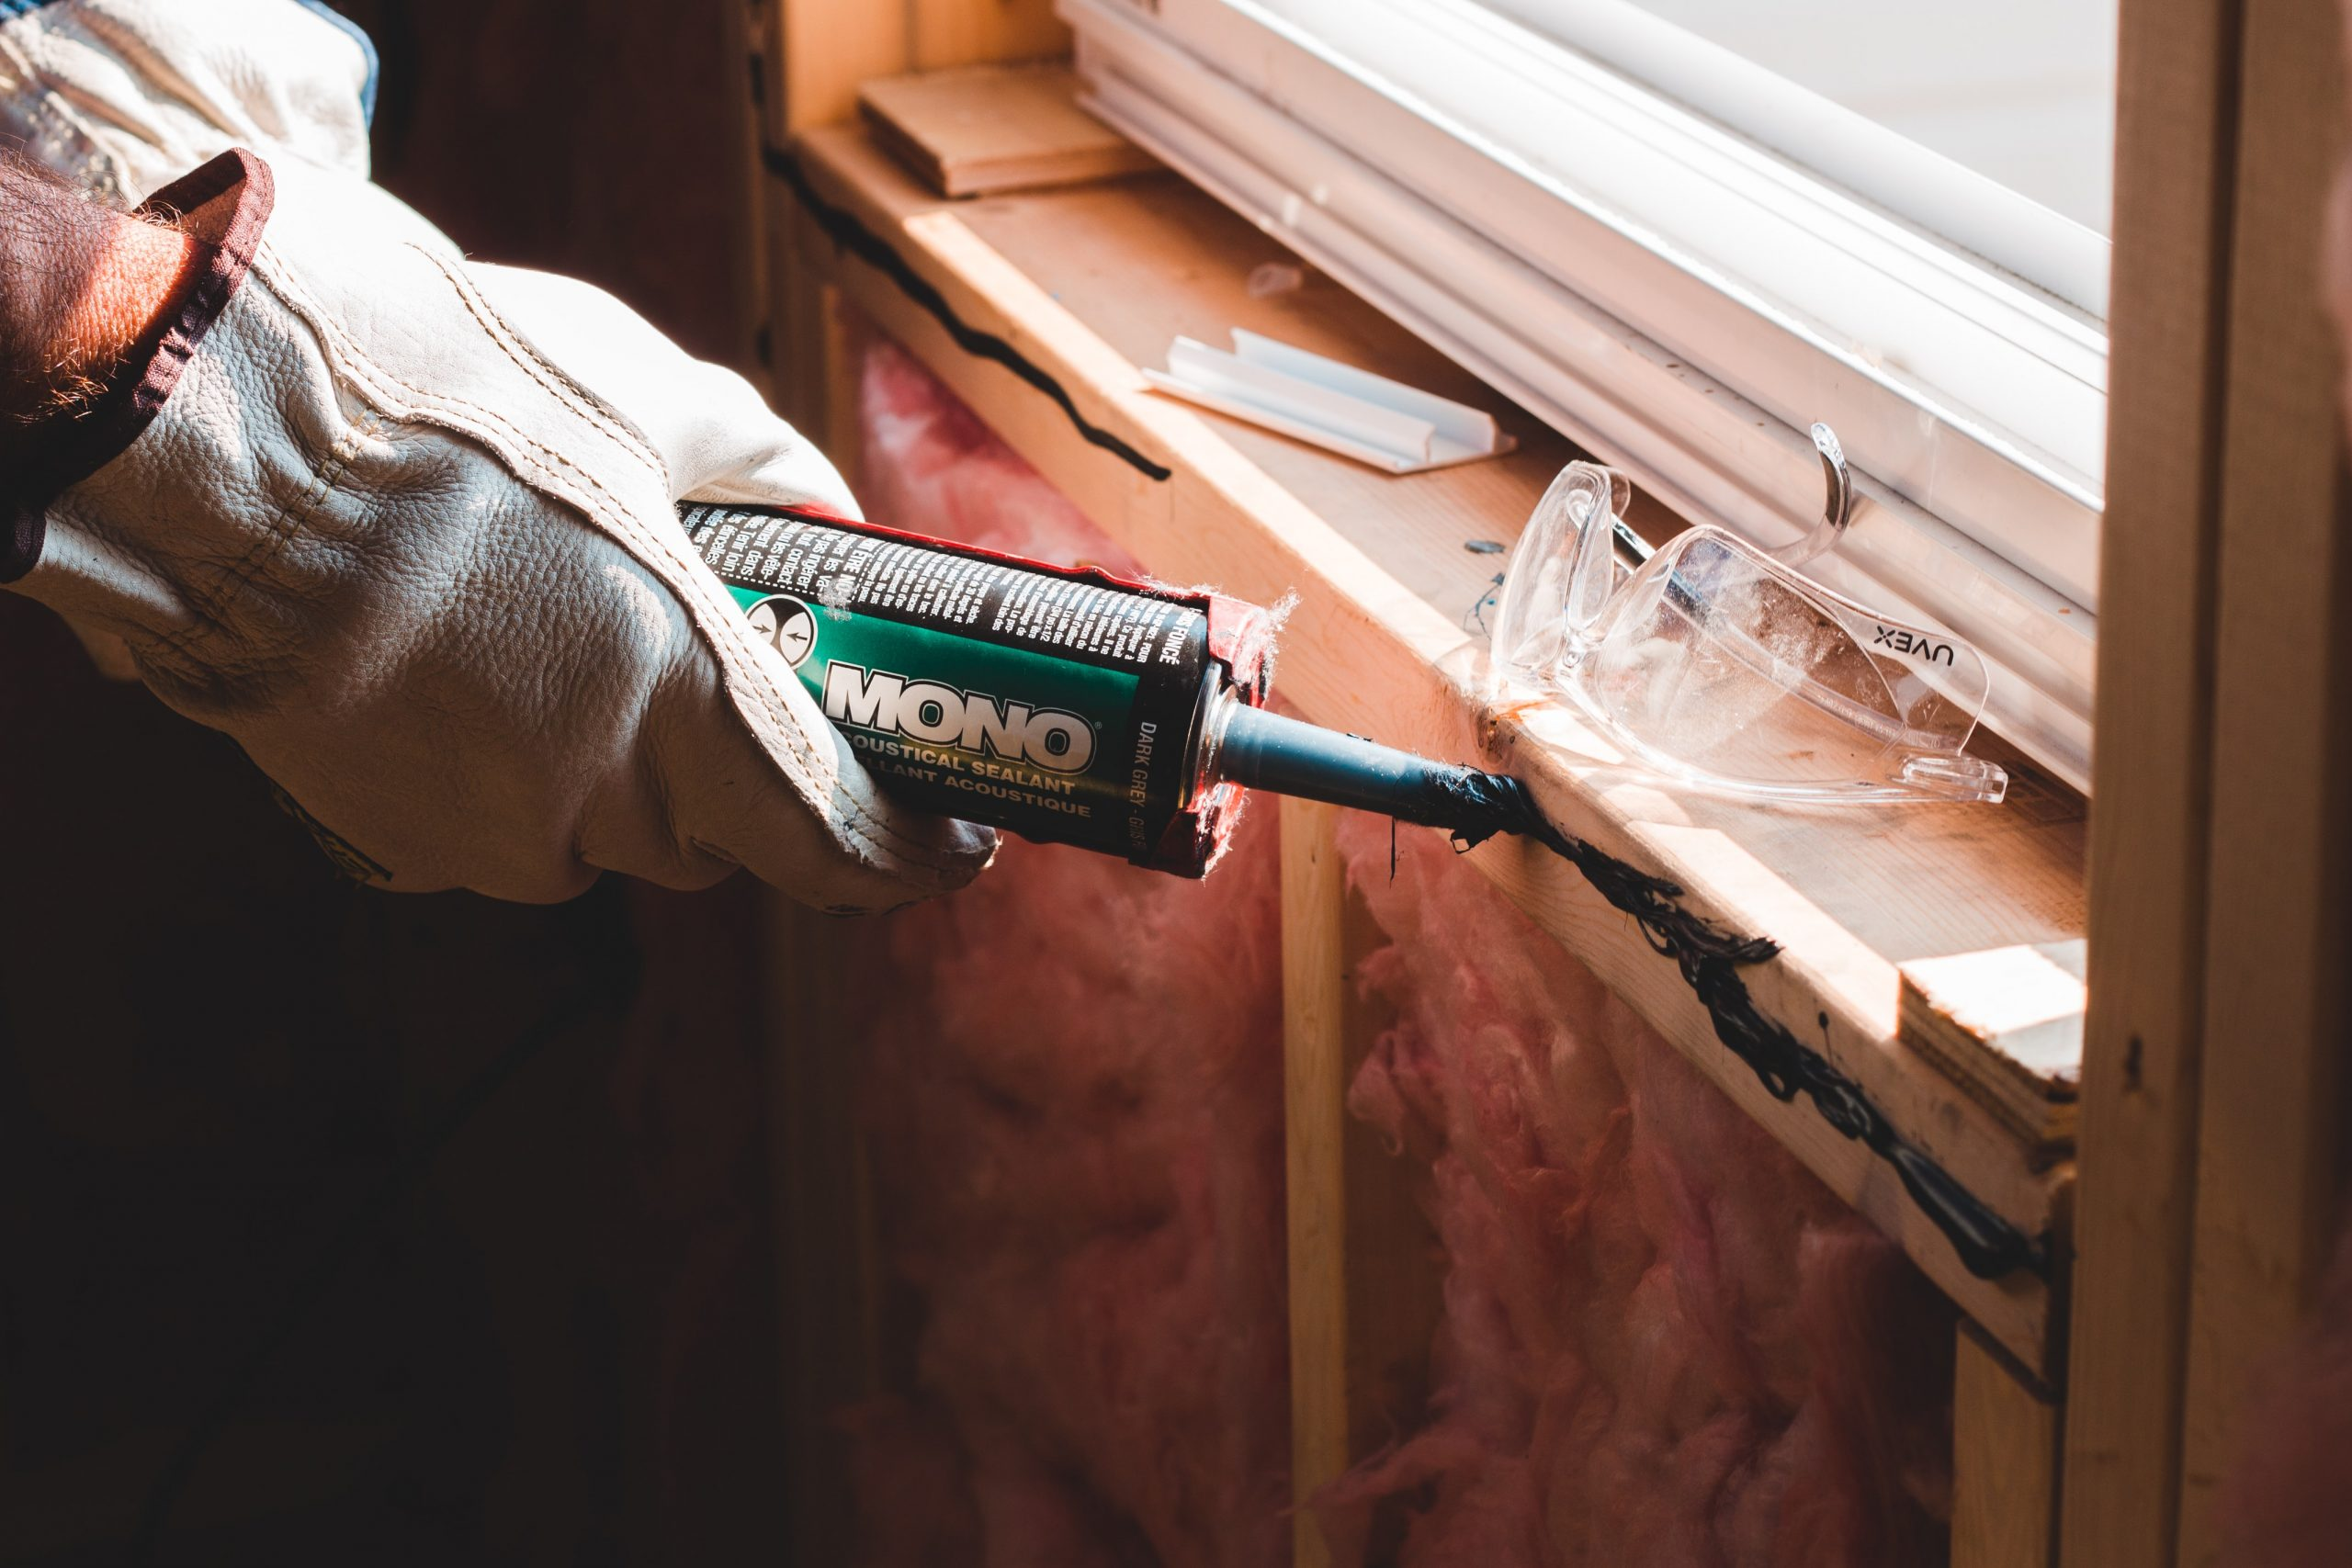 A person's gloved hands apply a tube of green Mono sealant to a window sill that is under construction.